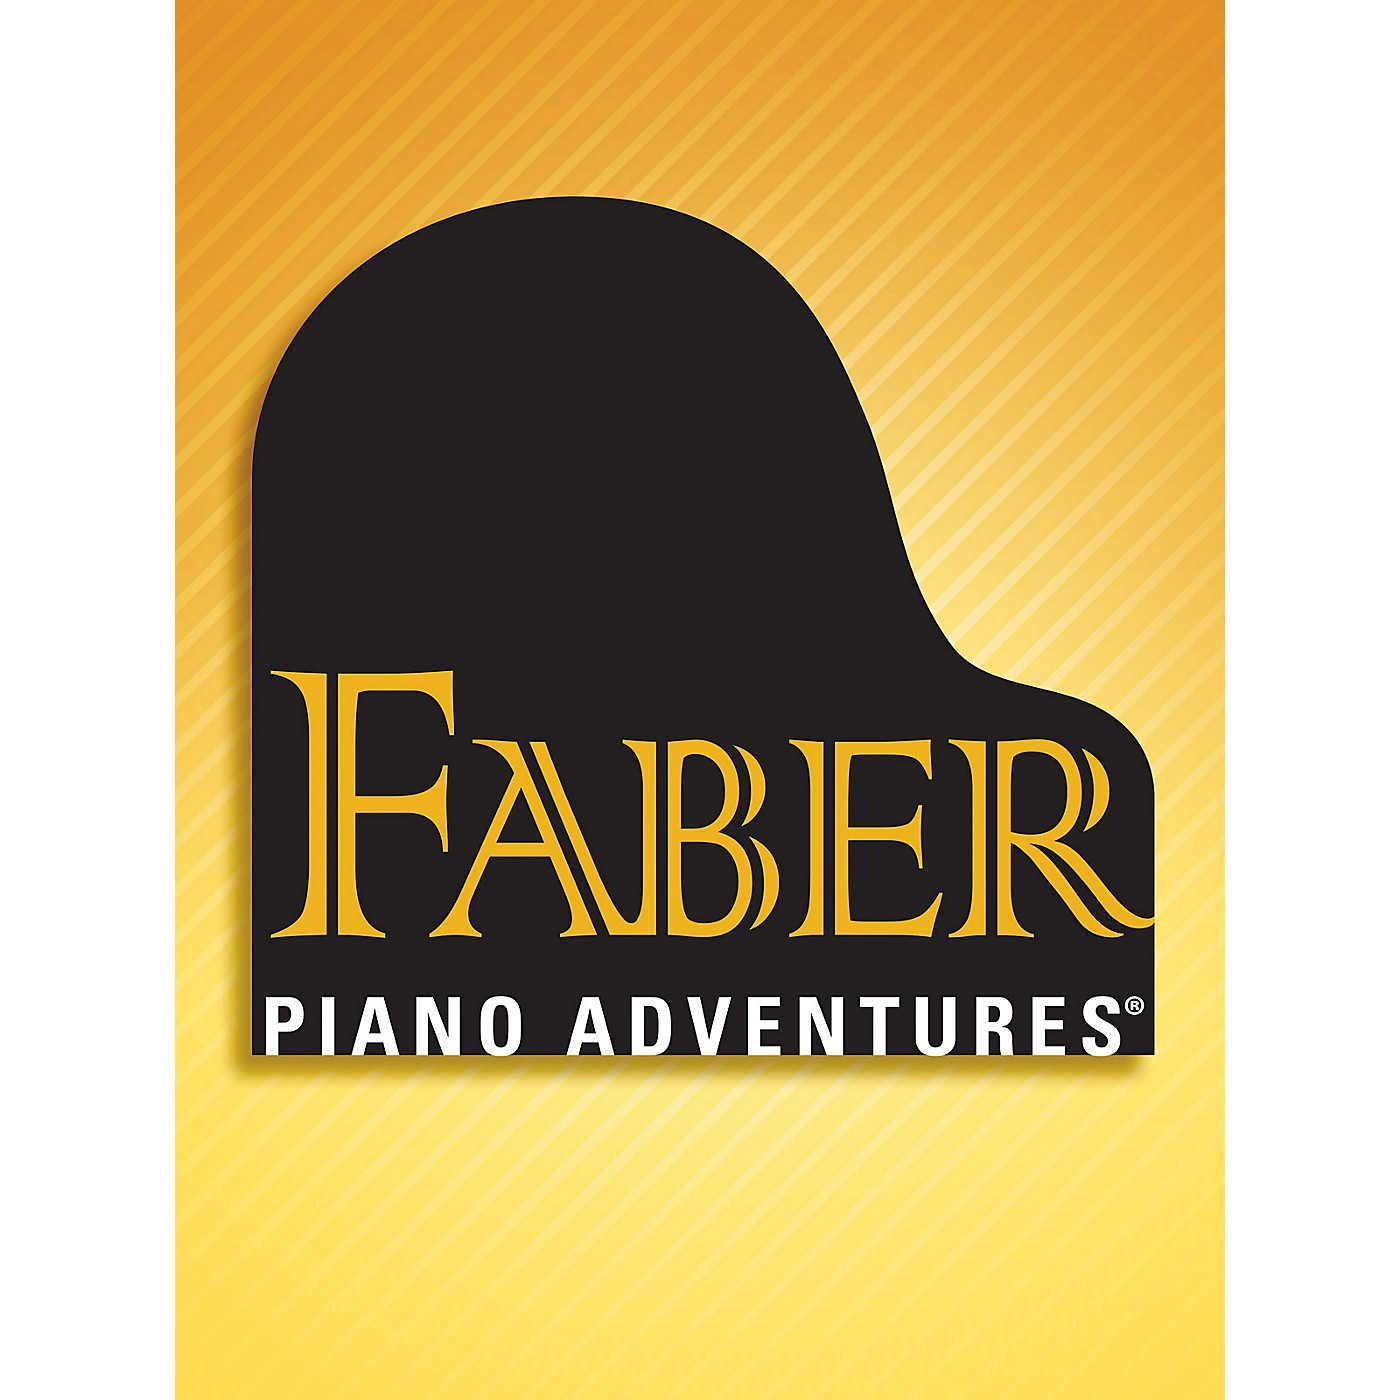 Faber Piano Adventures Accelerated Piano Adventures for the Older Beginner Faber Piano CD by Nancy Faber (Level Older Beginner) thumbnail